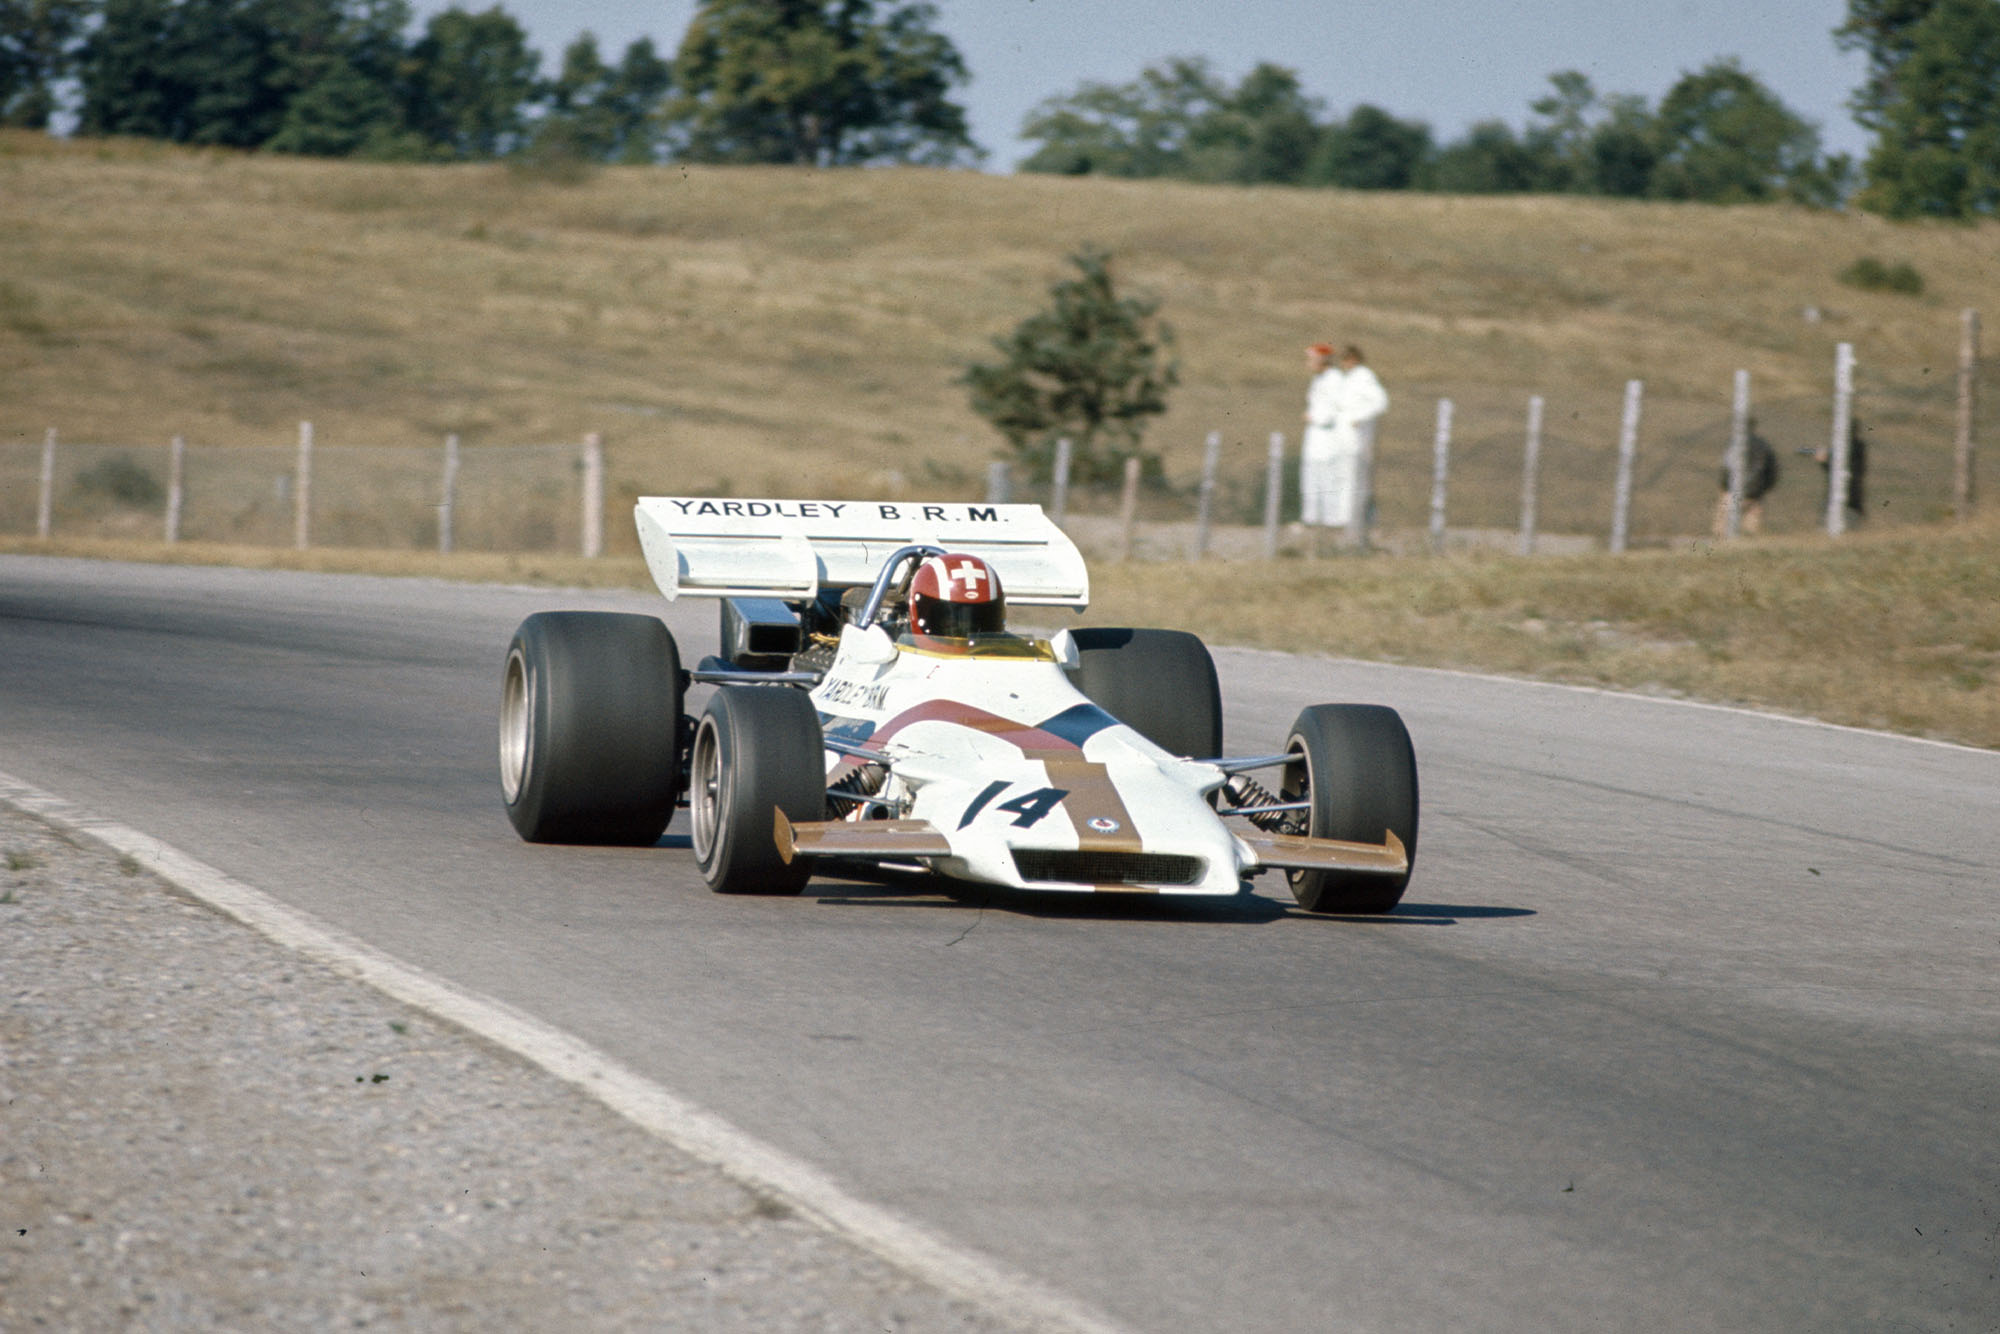 Jo Siffert taking a corner in his BRM at the 1971 Canadian Grand Prix.